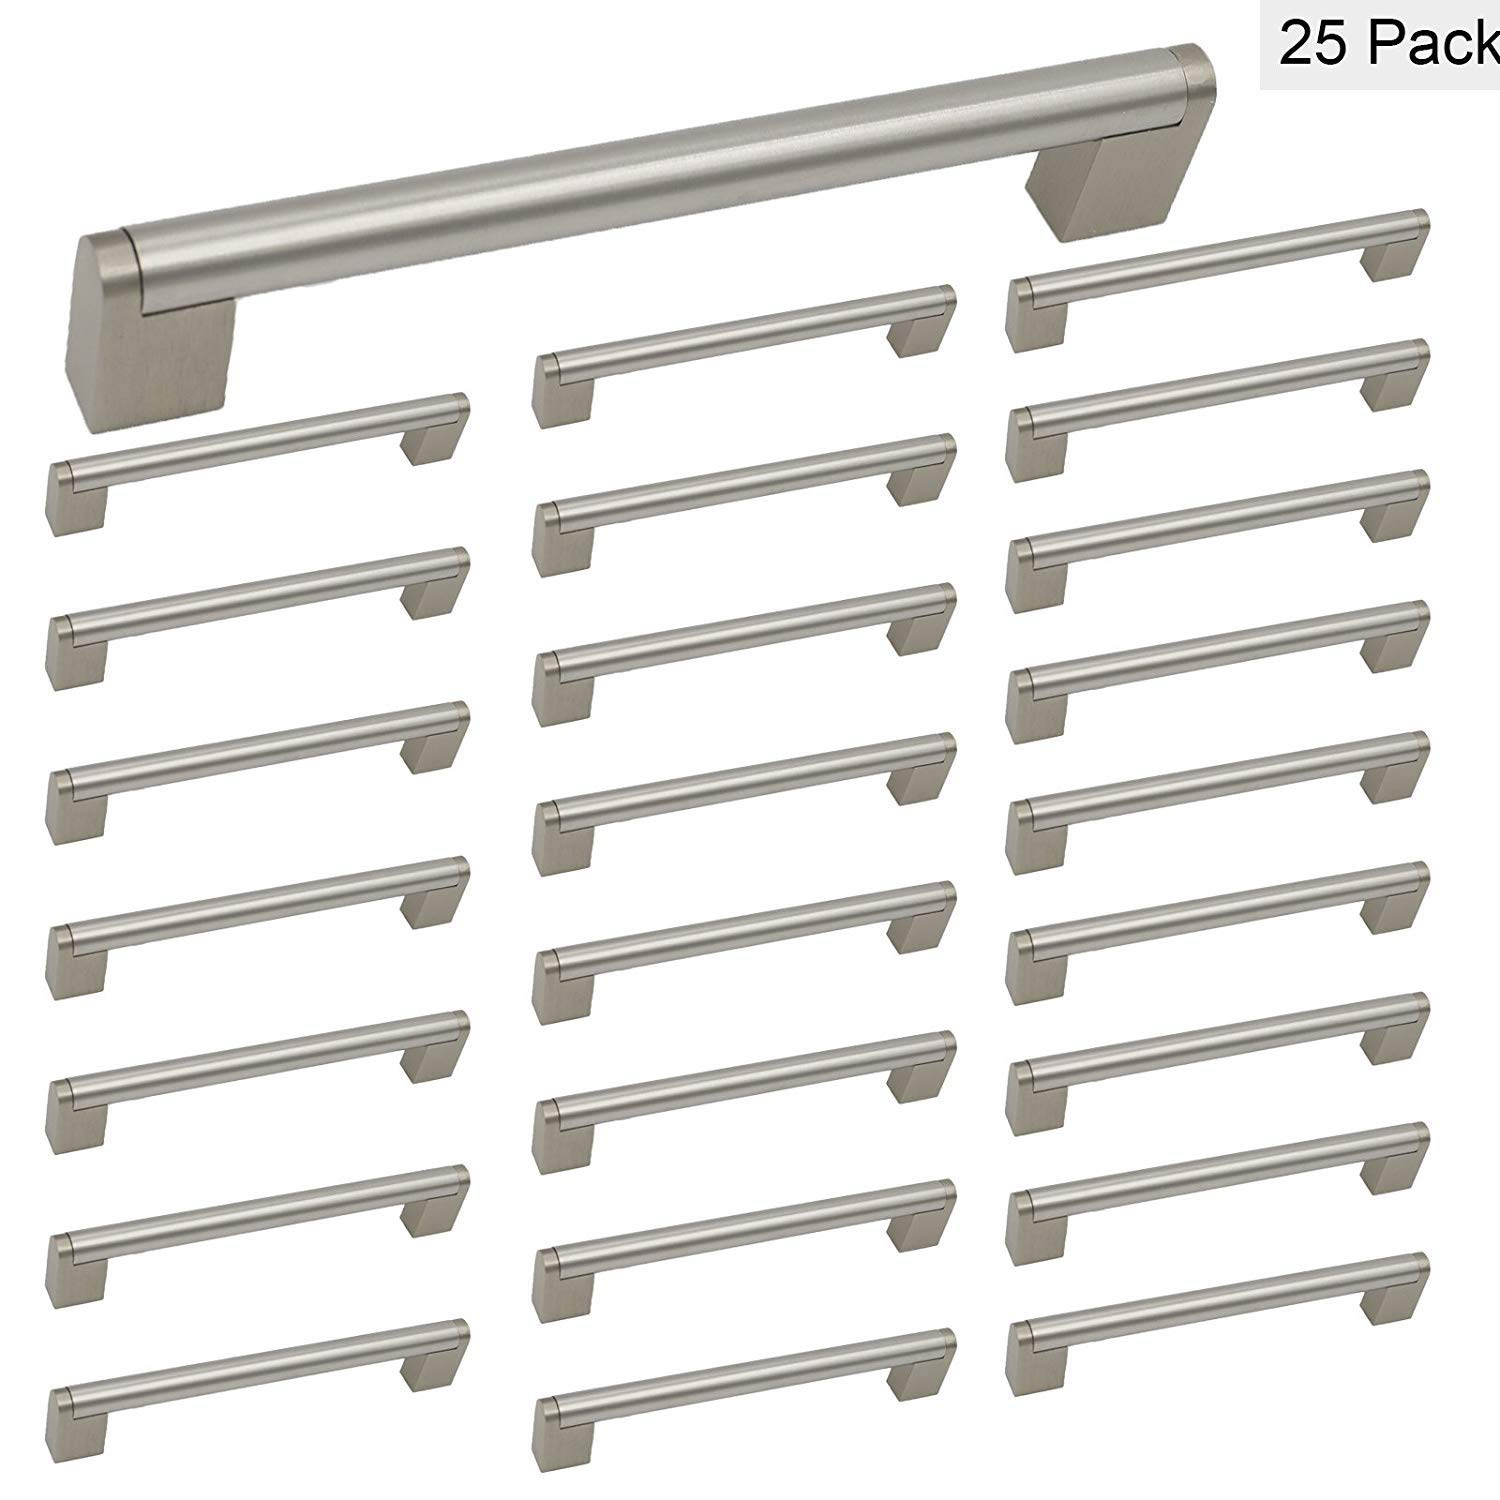 Cheap 3 Inch Center To Center Cabinet Pulls Find 3 Inch Center To